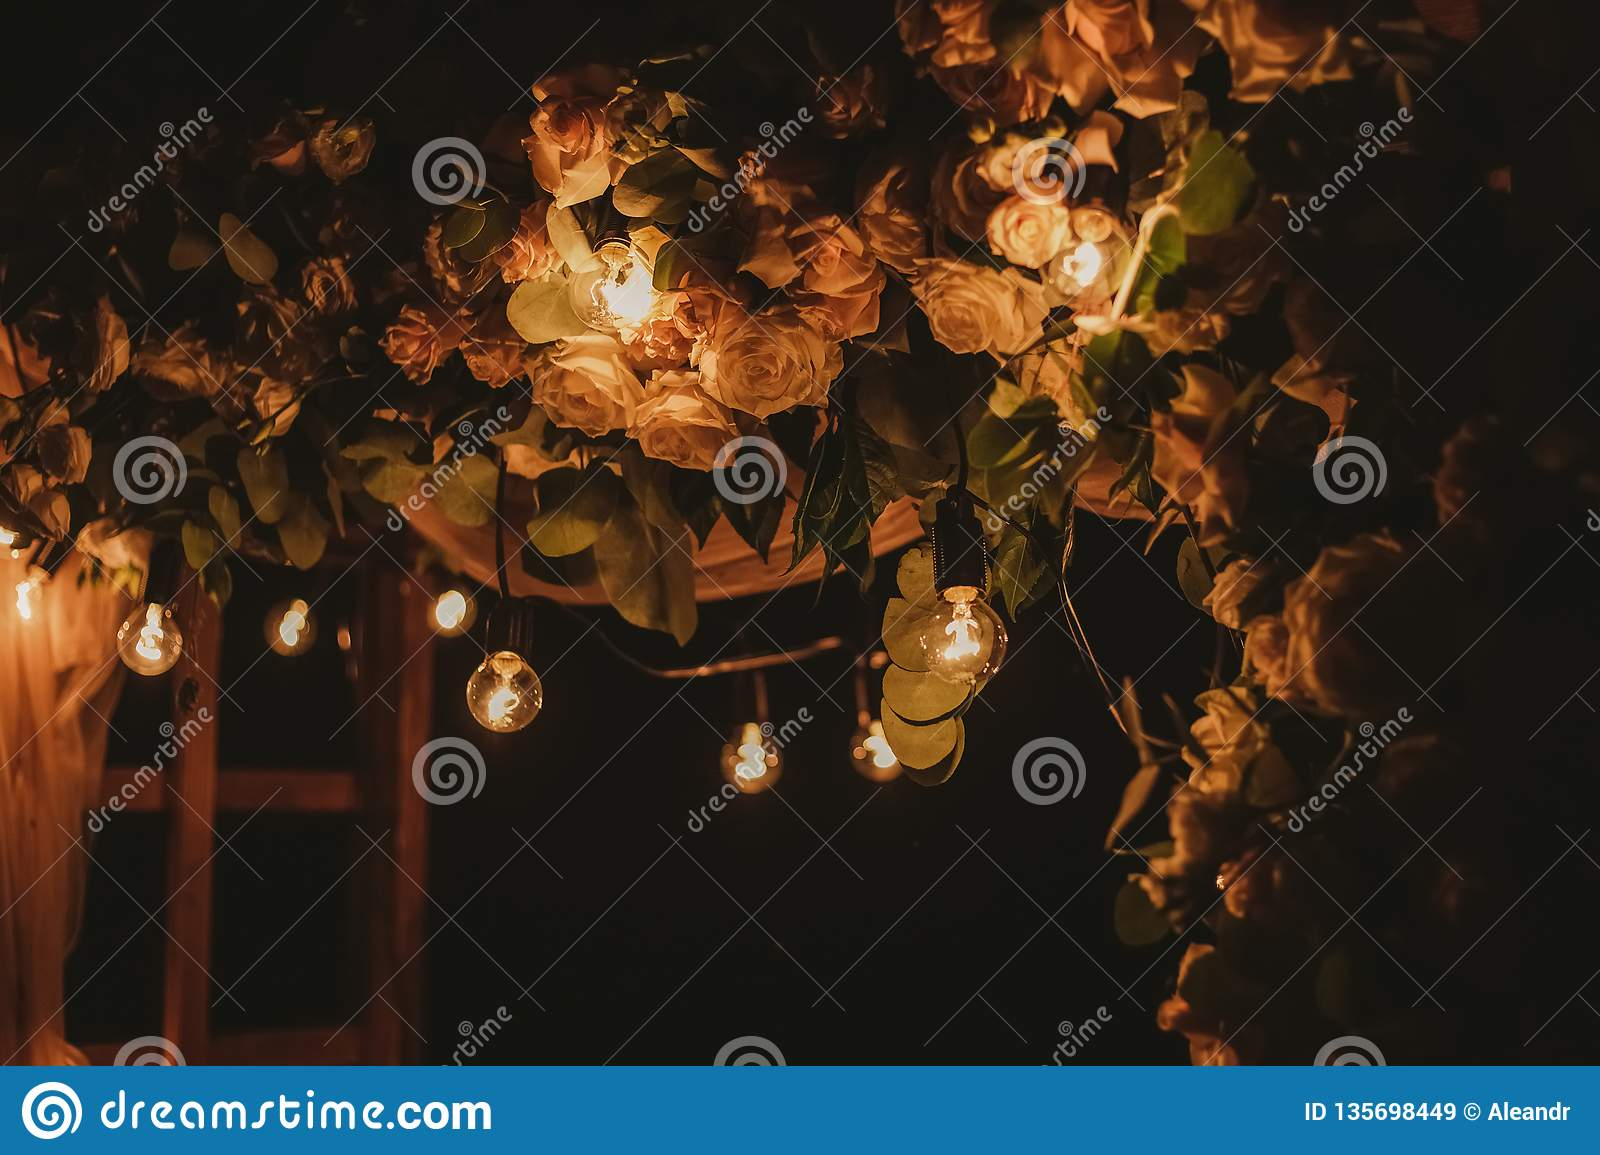 Closeup view of top of beautiful floral night wedding decorations